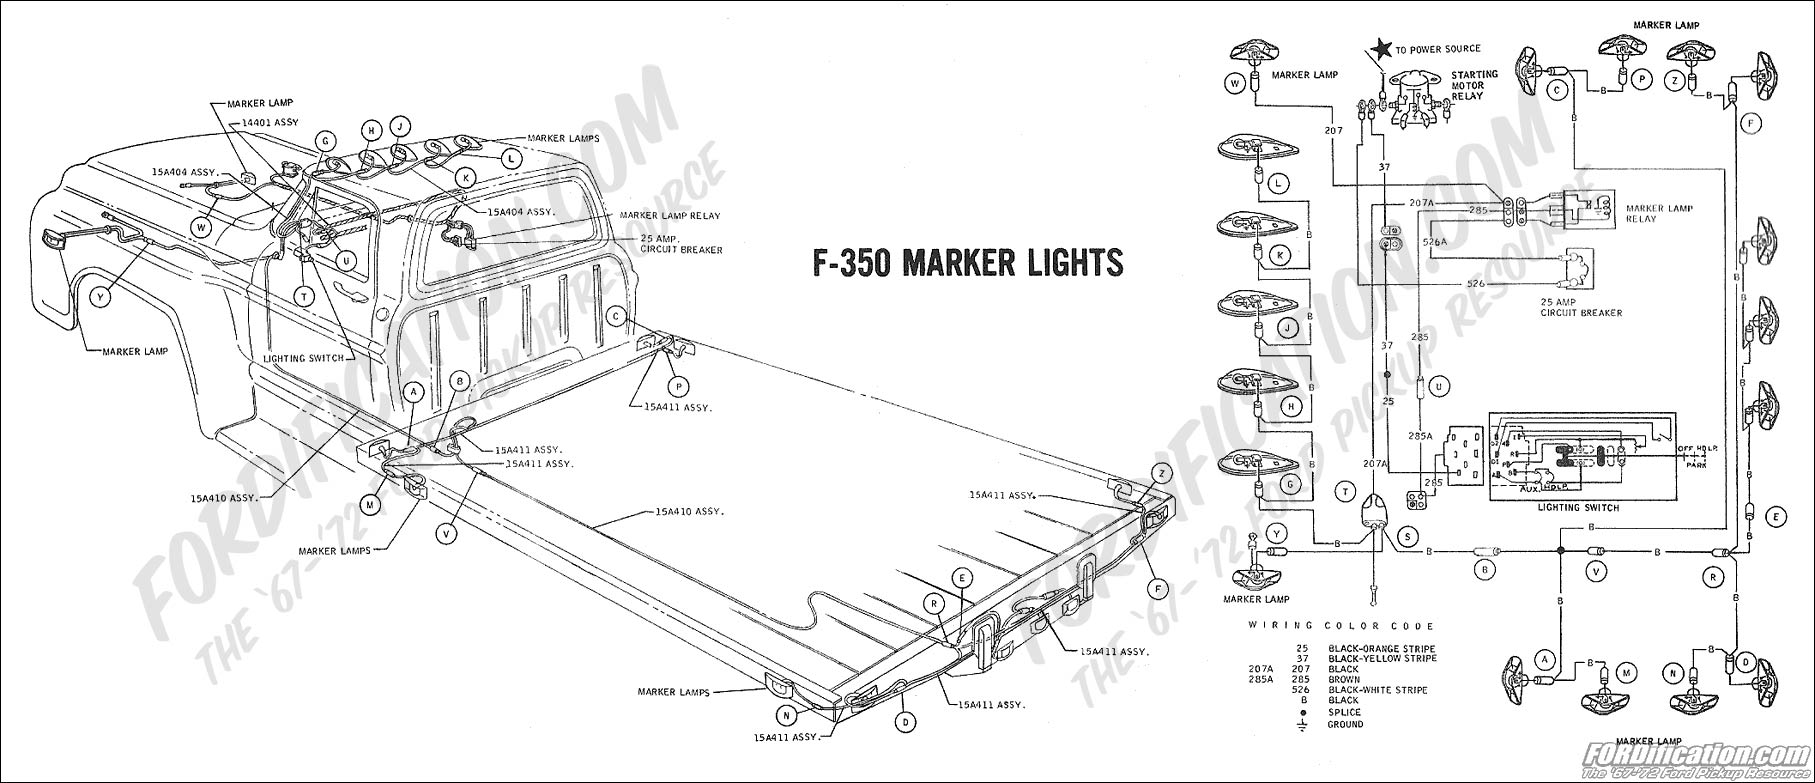 wiring_69F350markers ford truck technical drawings and schematics section h wiring marker light wiring diagram at soozxer.org